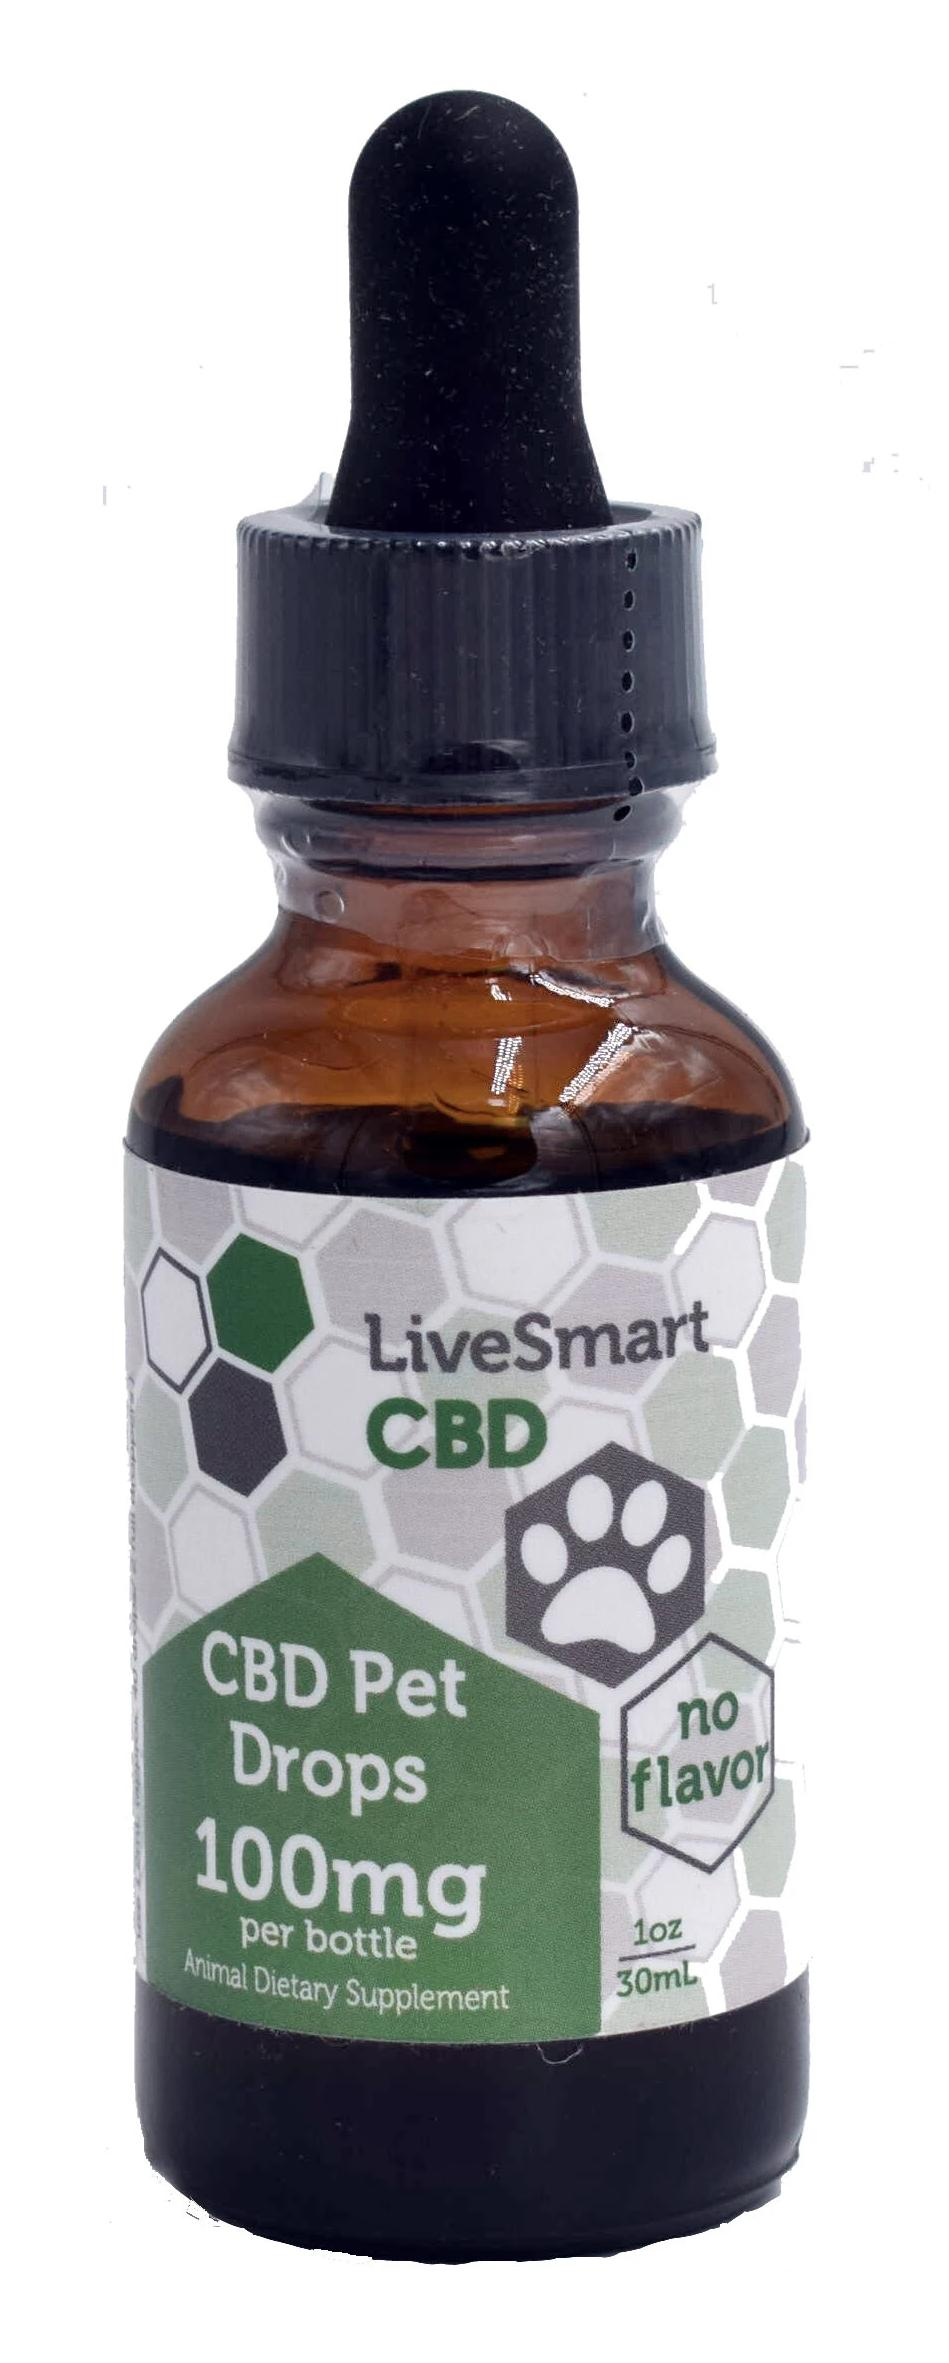 LiveSmart Hemp Oil Full-Spectrum Pet Drops 100mg (30mL)